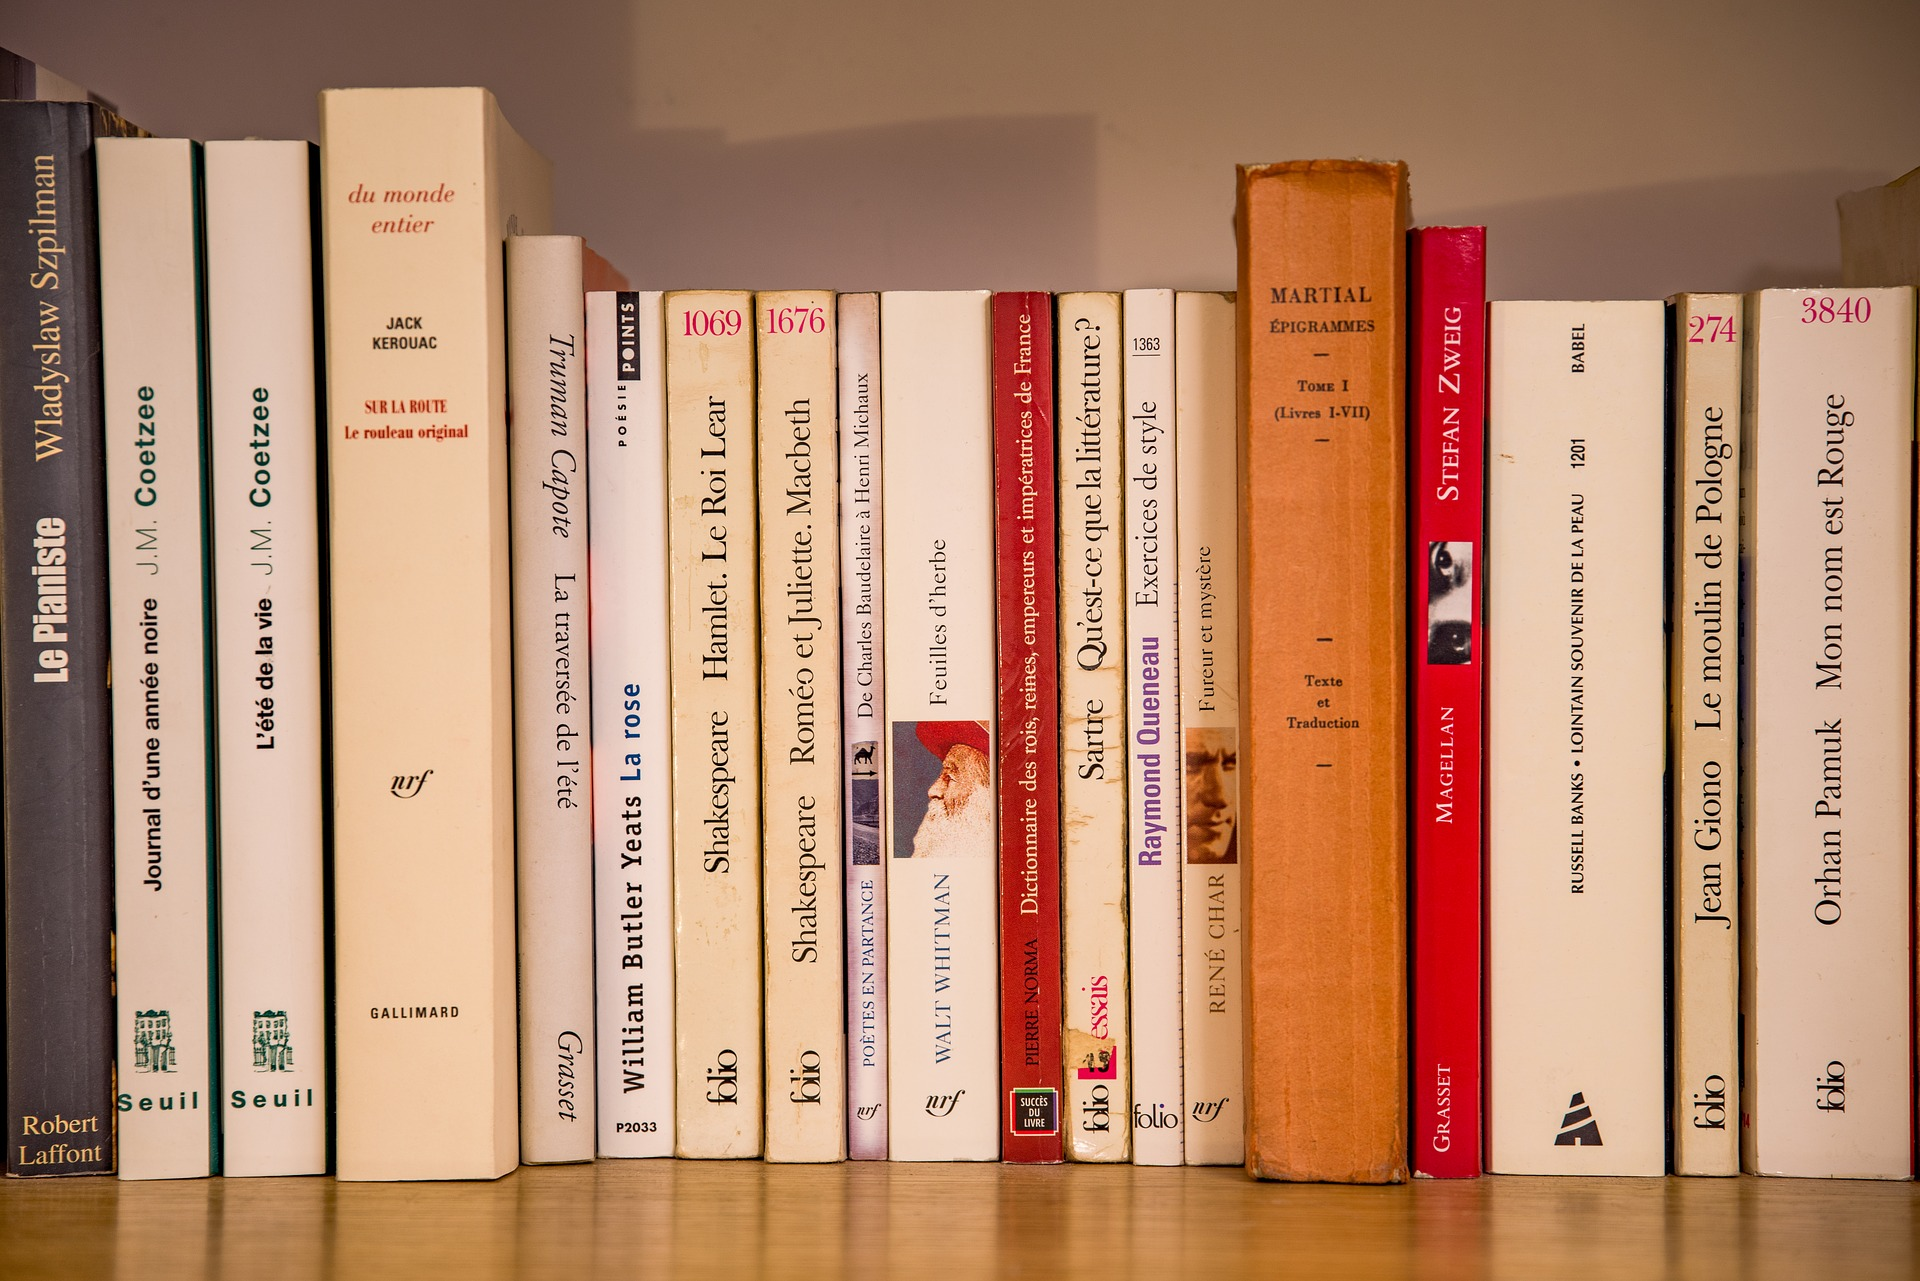 MyFrenchLife™ – MyFrenchLife.org – Top 6 Parisian novels: a journey through French fiction – the perfect shortlist